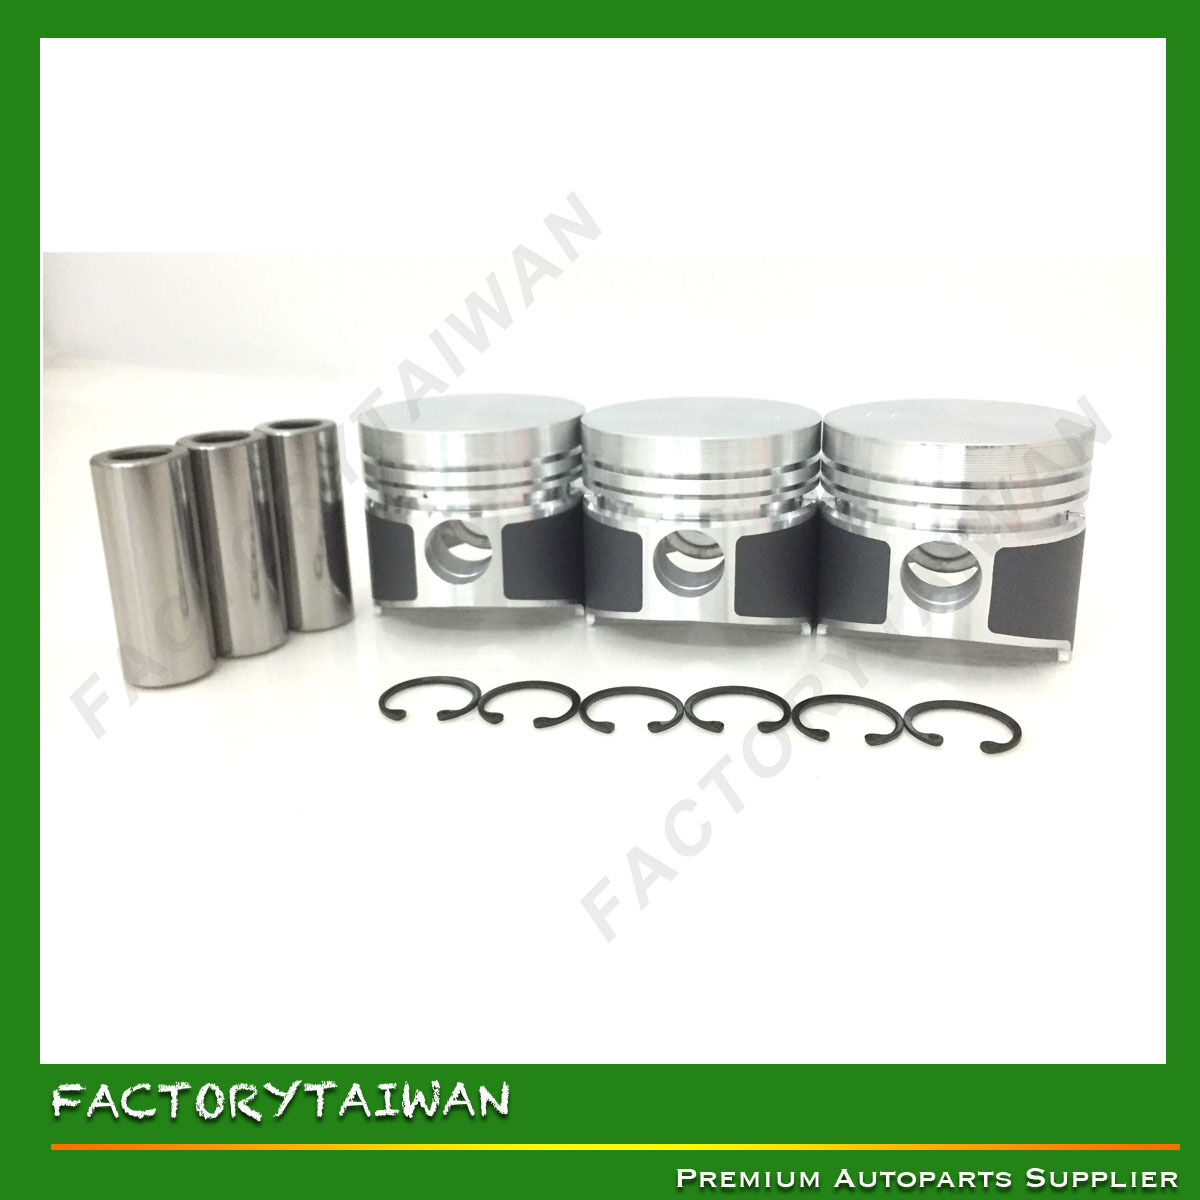 100/% TAIWAN MADE Piston Ring Kit Set STD 68mm for KUBOTA  ZB500 D750